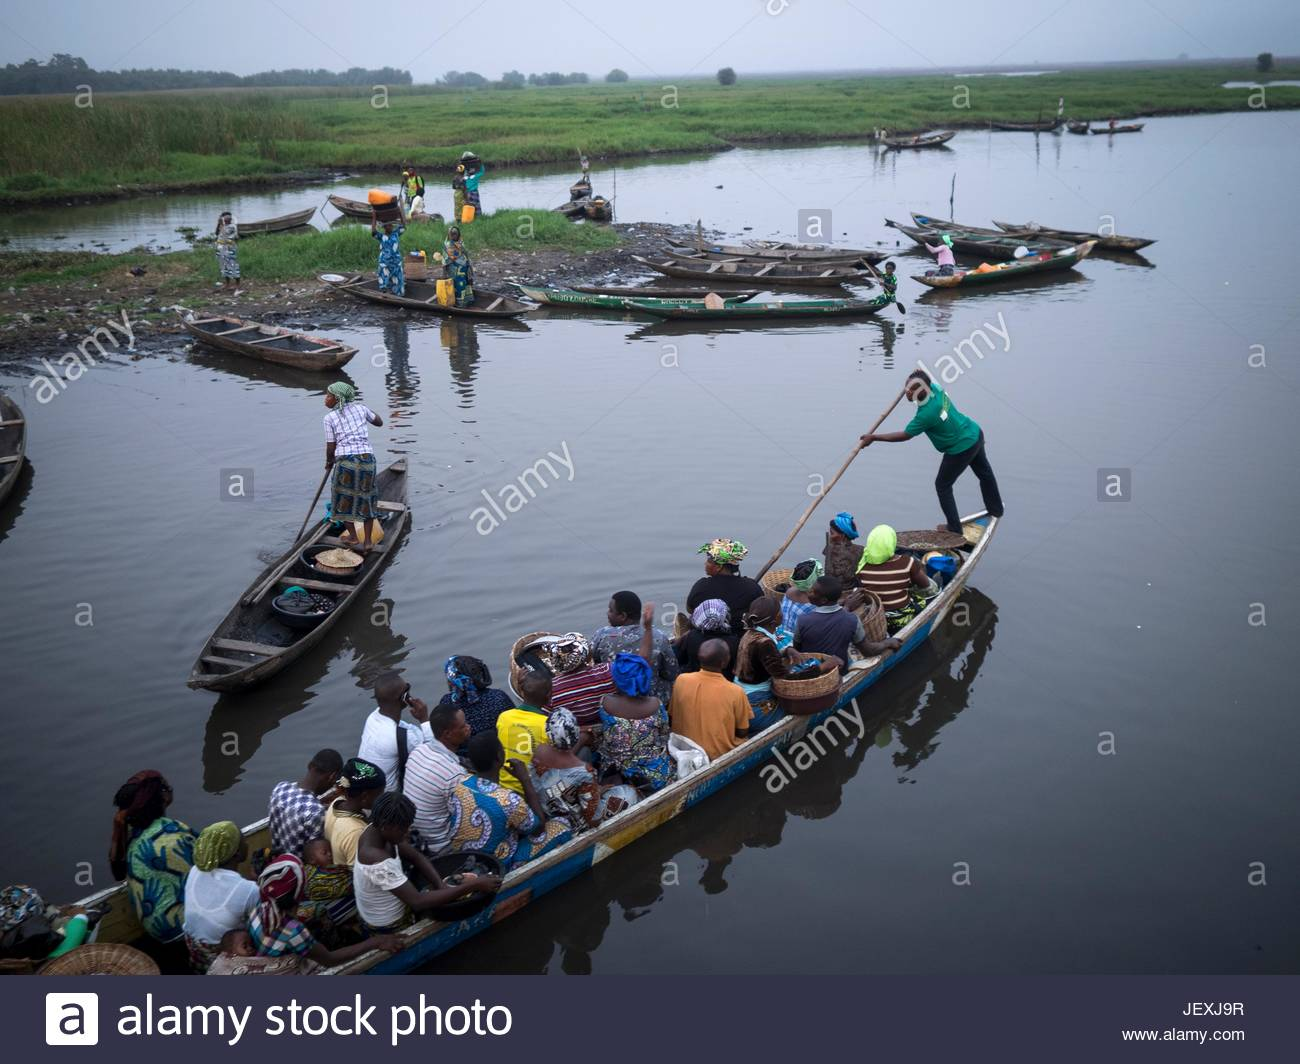 People commuting by boat. - Stock Image